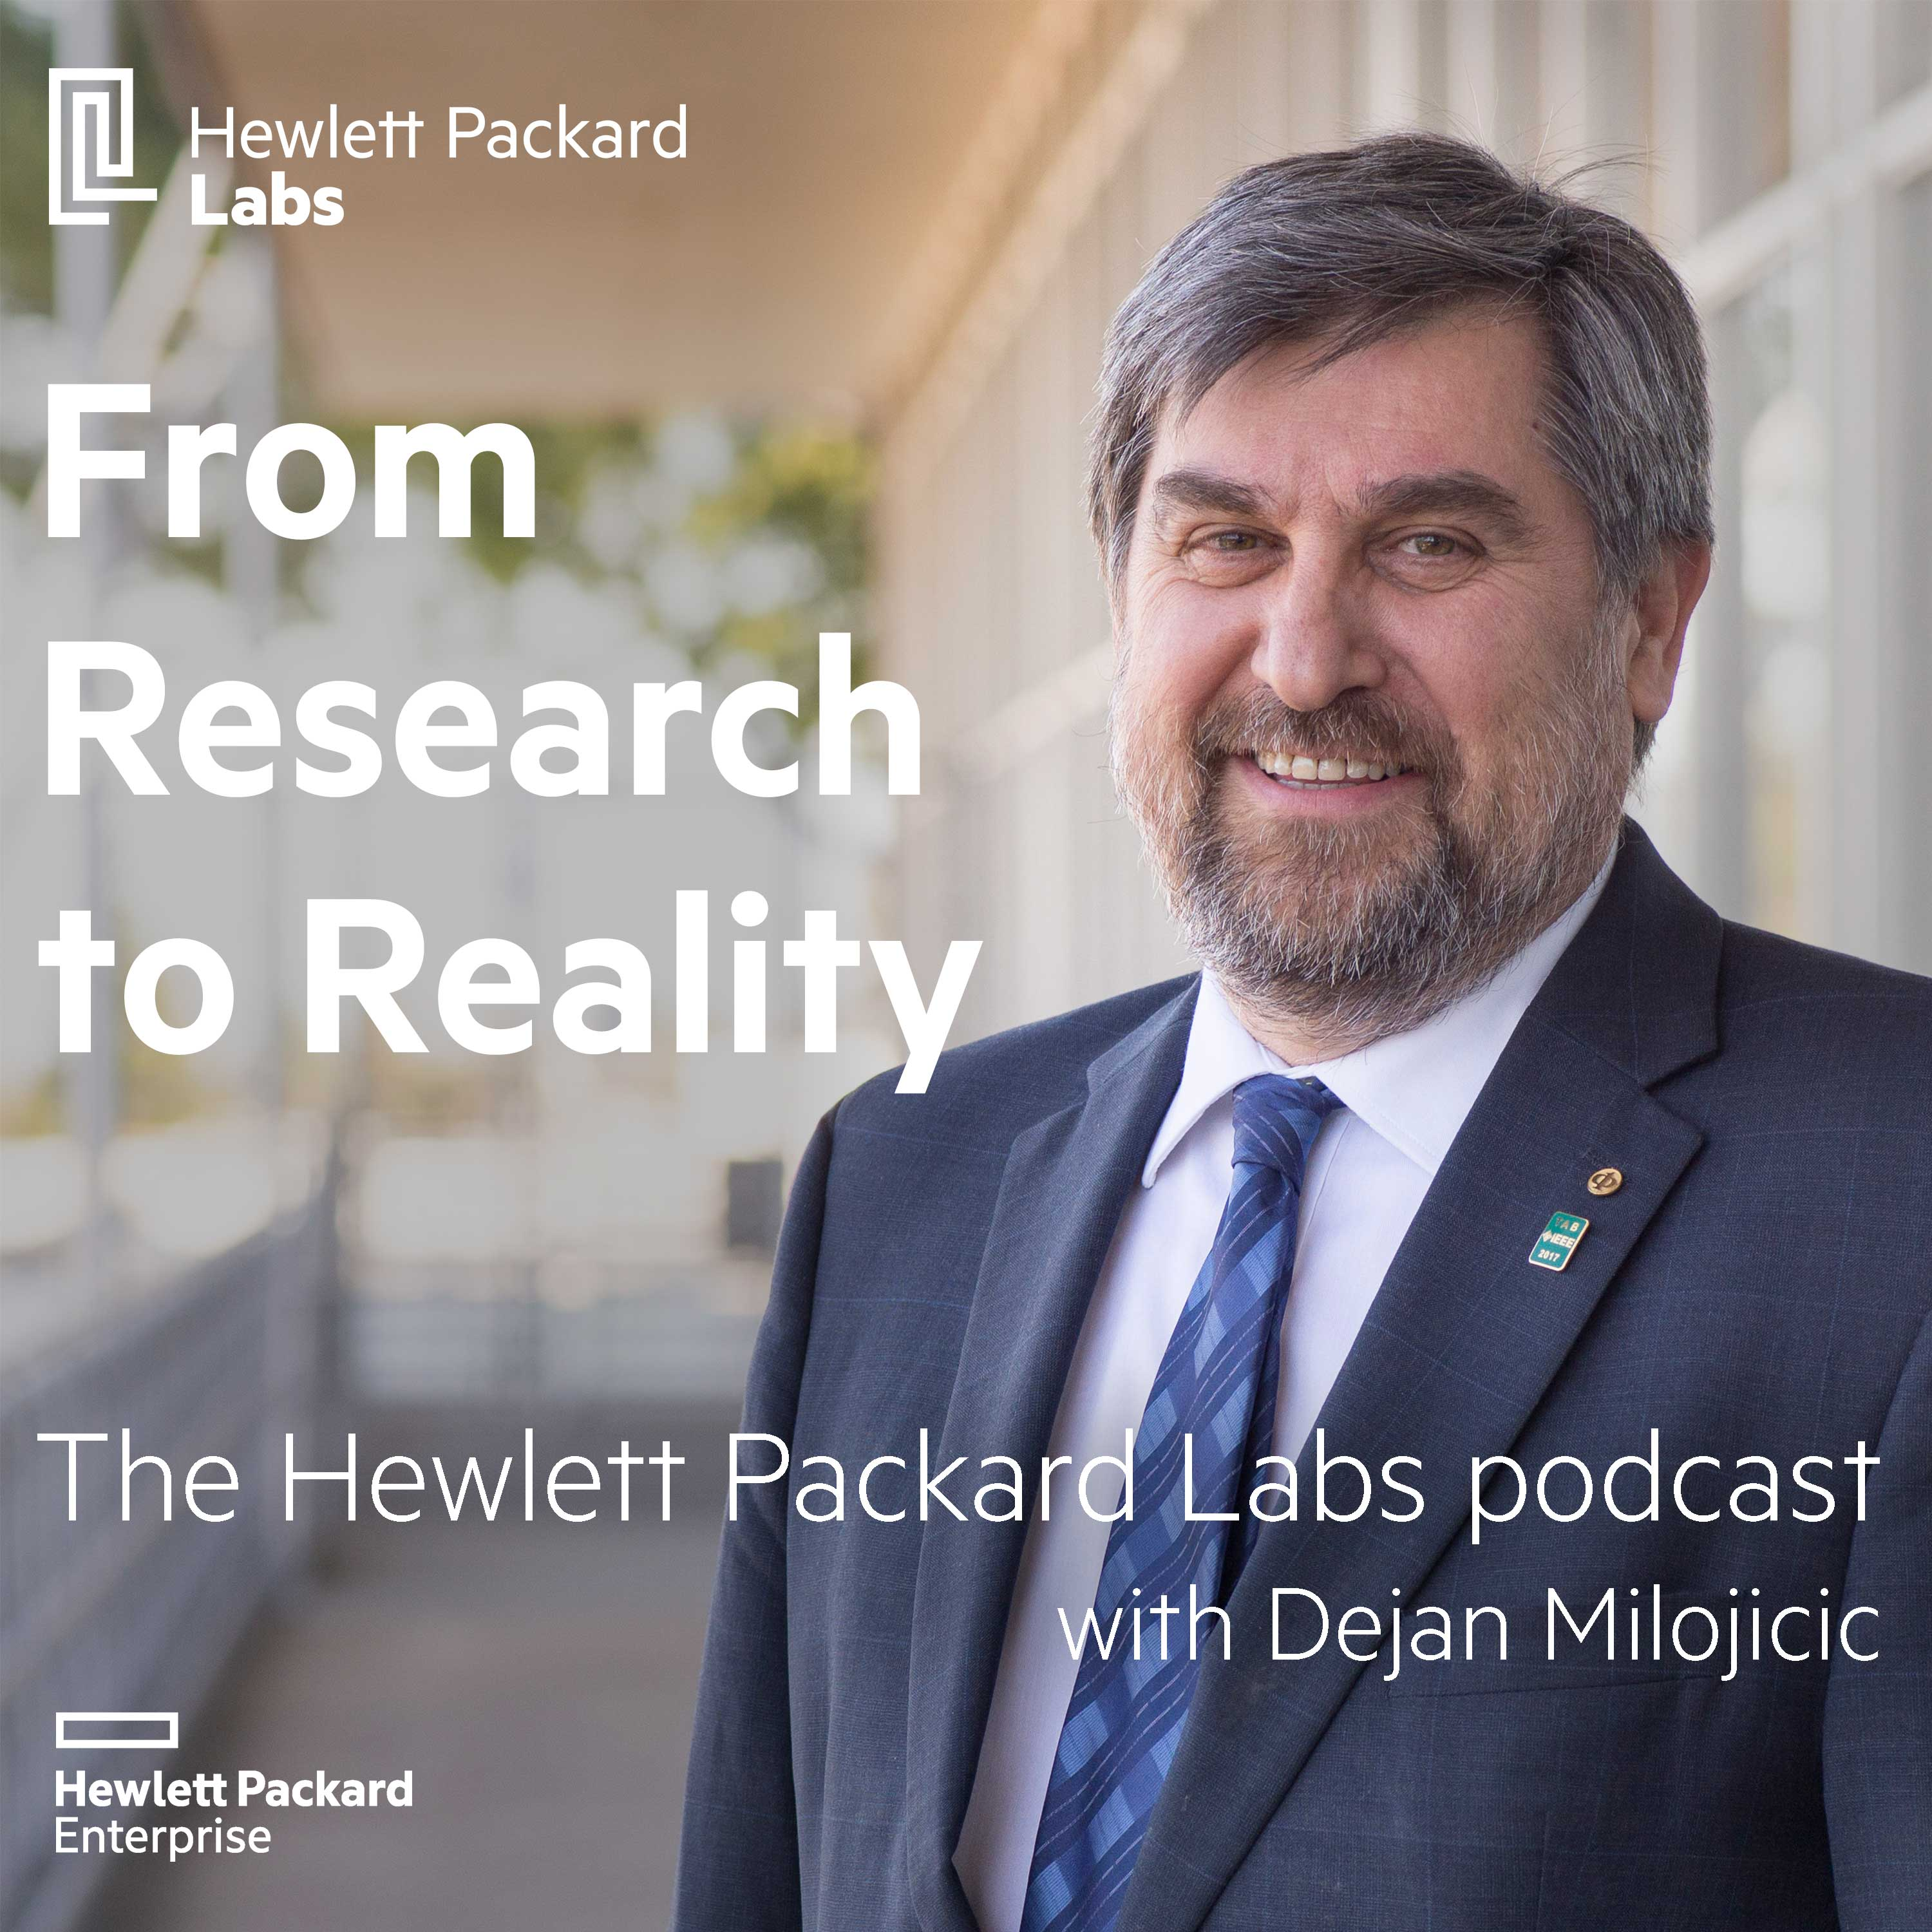 From Research to Reality: The Hewlett Packard Labs Podcast show art